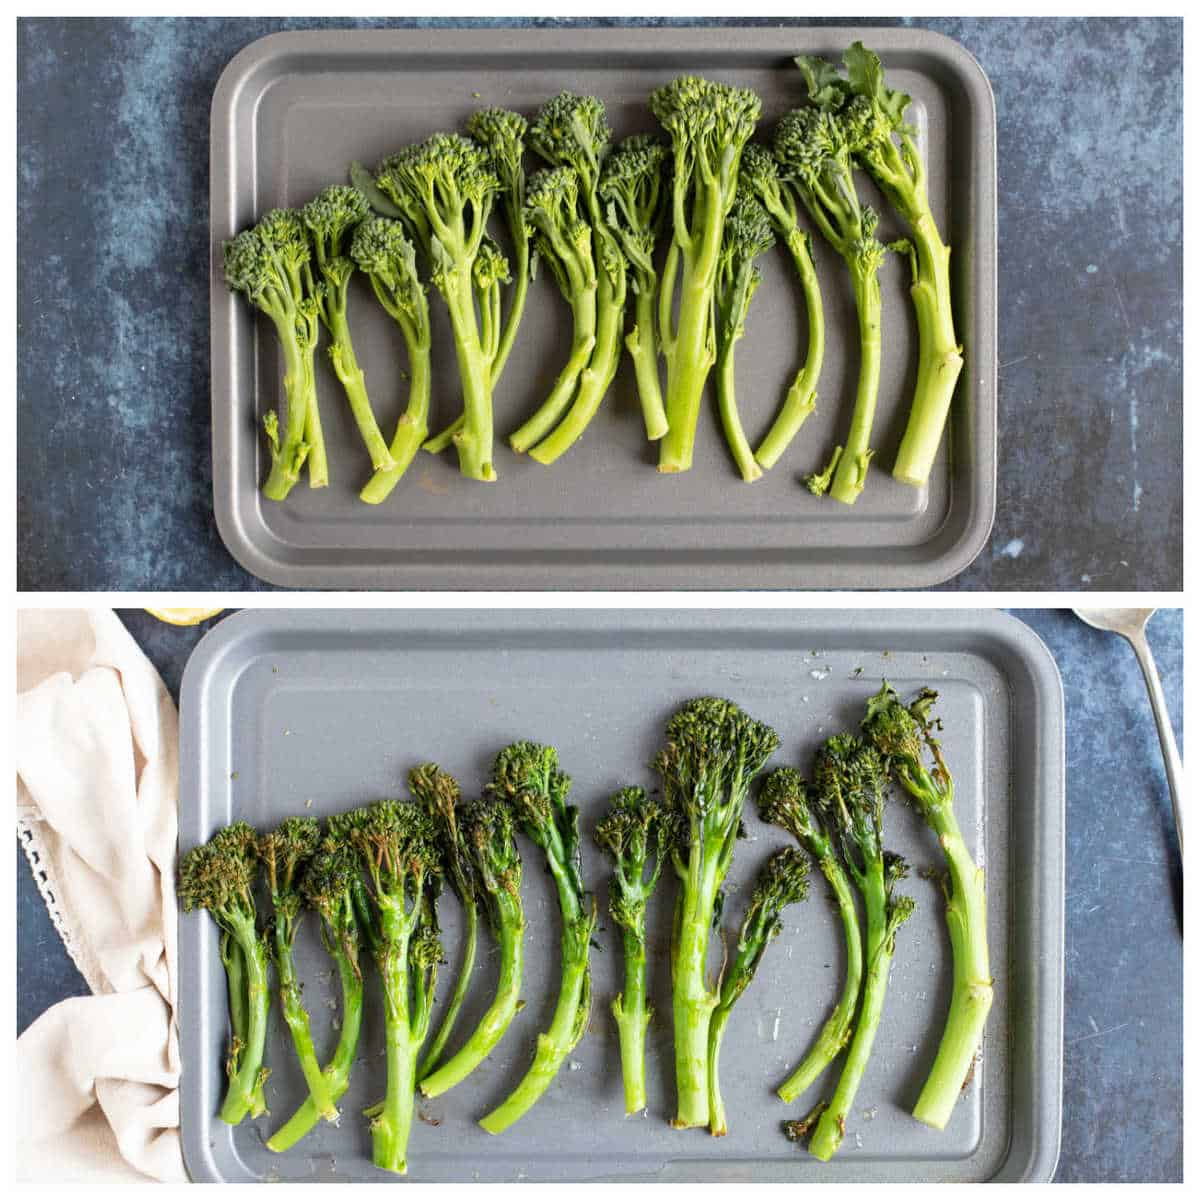 Step by step photo for making roasted tenderstem broccoli.